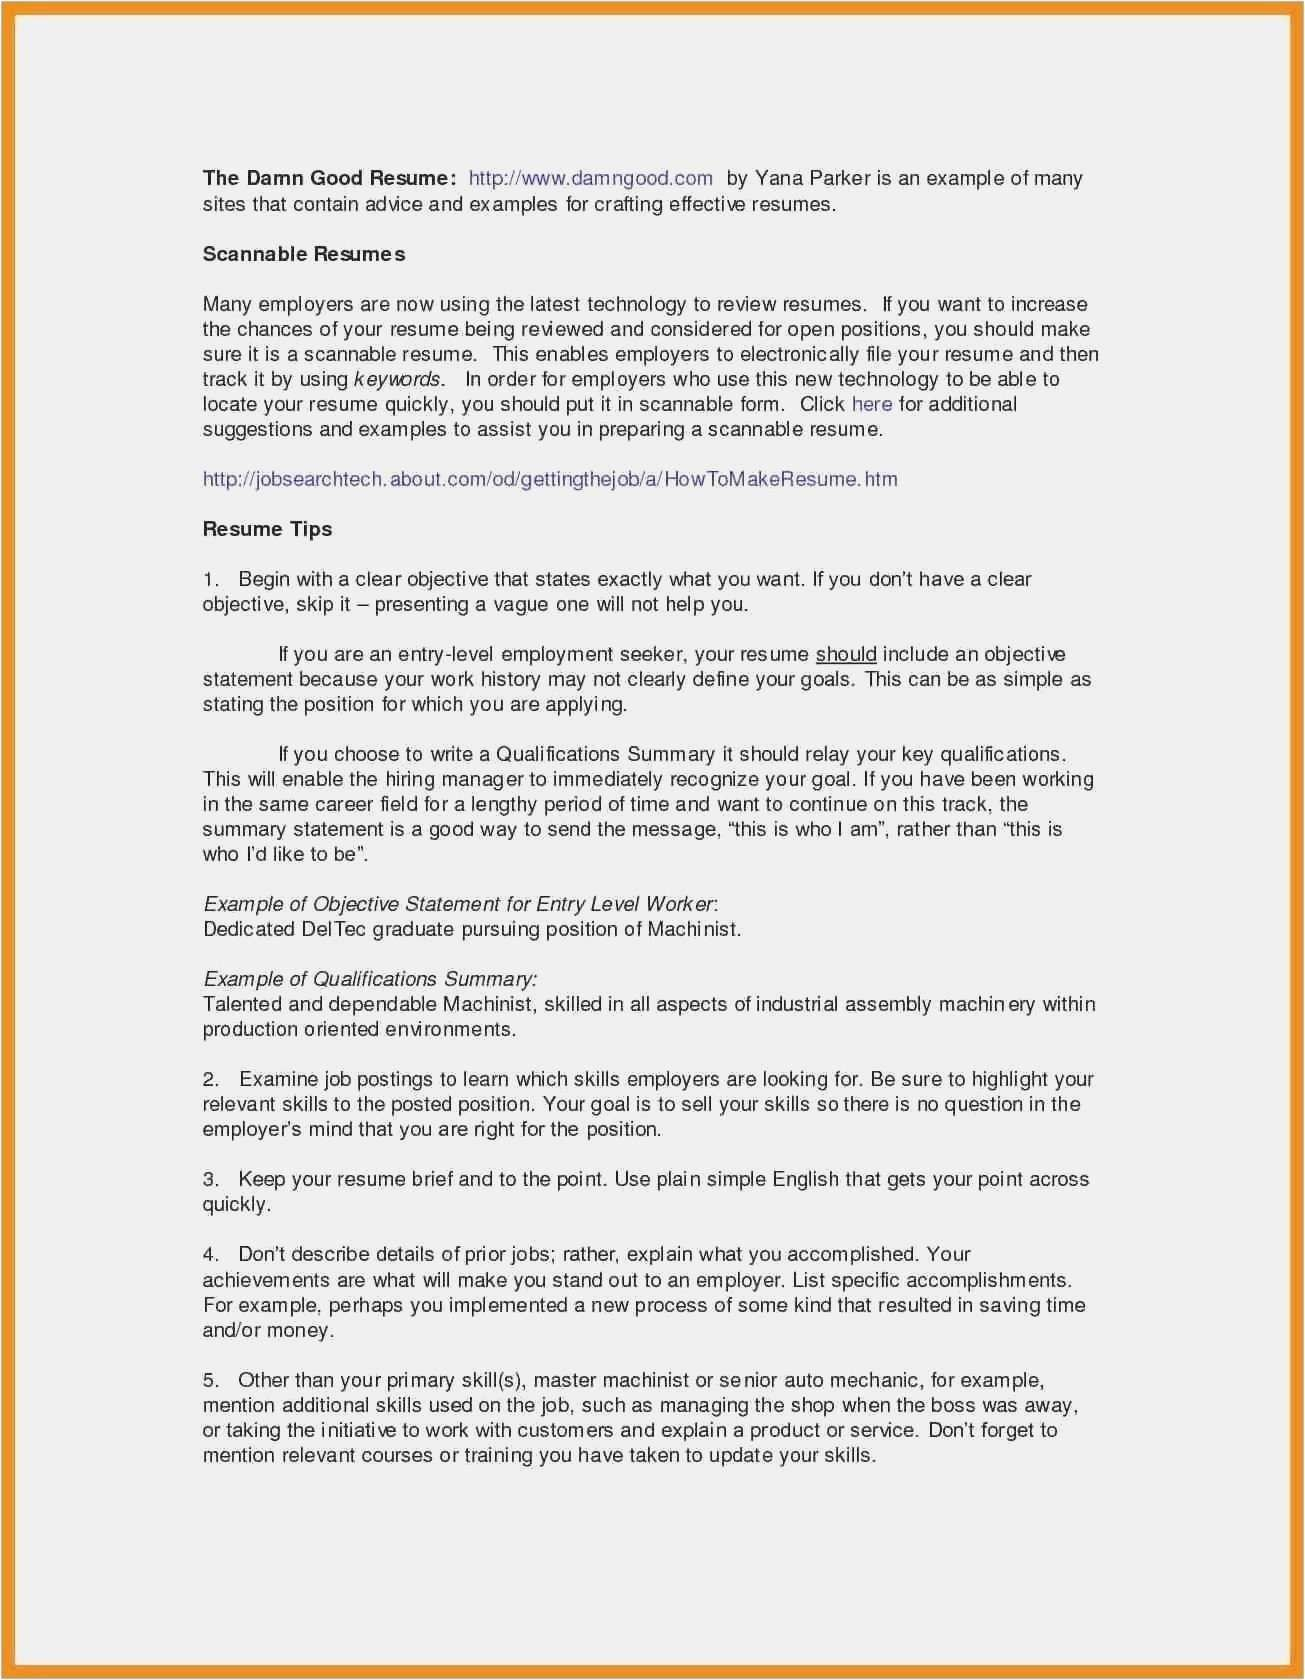 Force And Newton's Laws Worksheet Answers  Briefencounters With Regard To Newton039S Laws Worksheet Answers